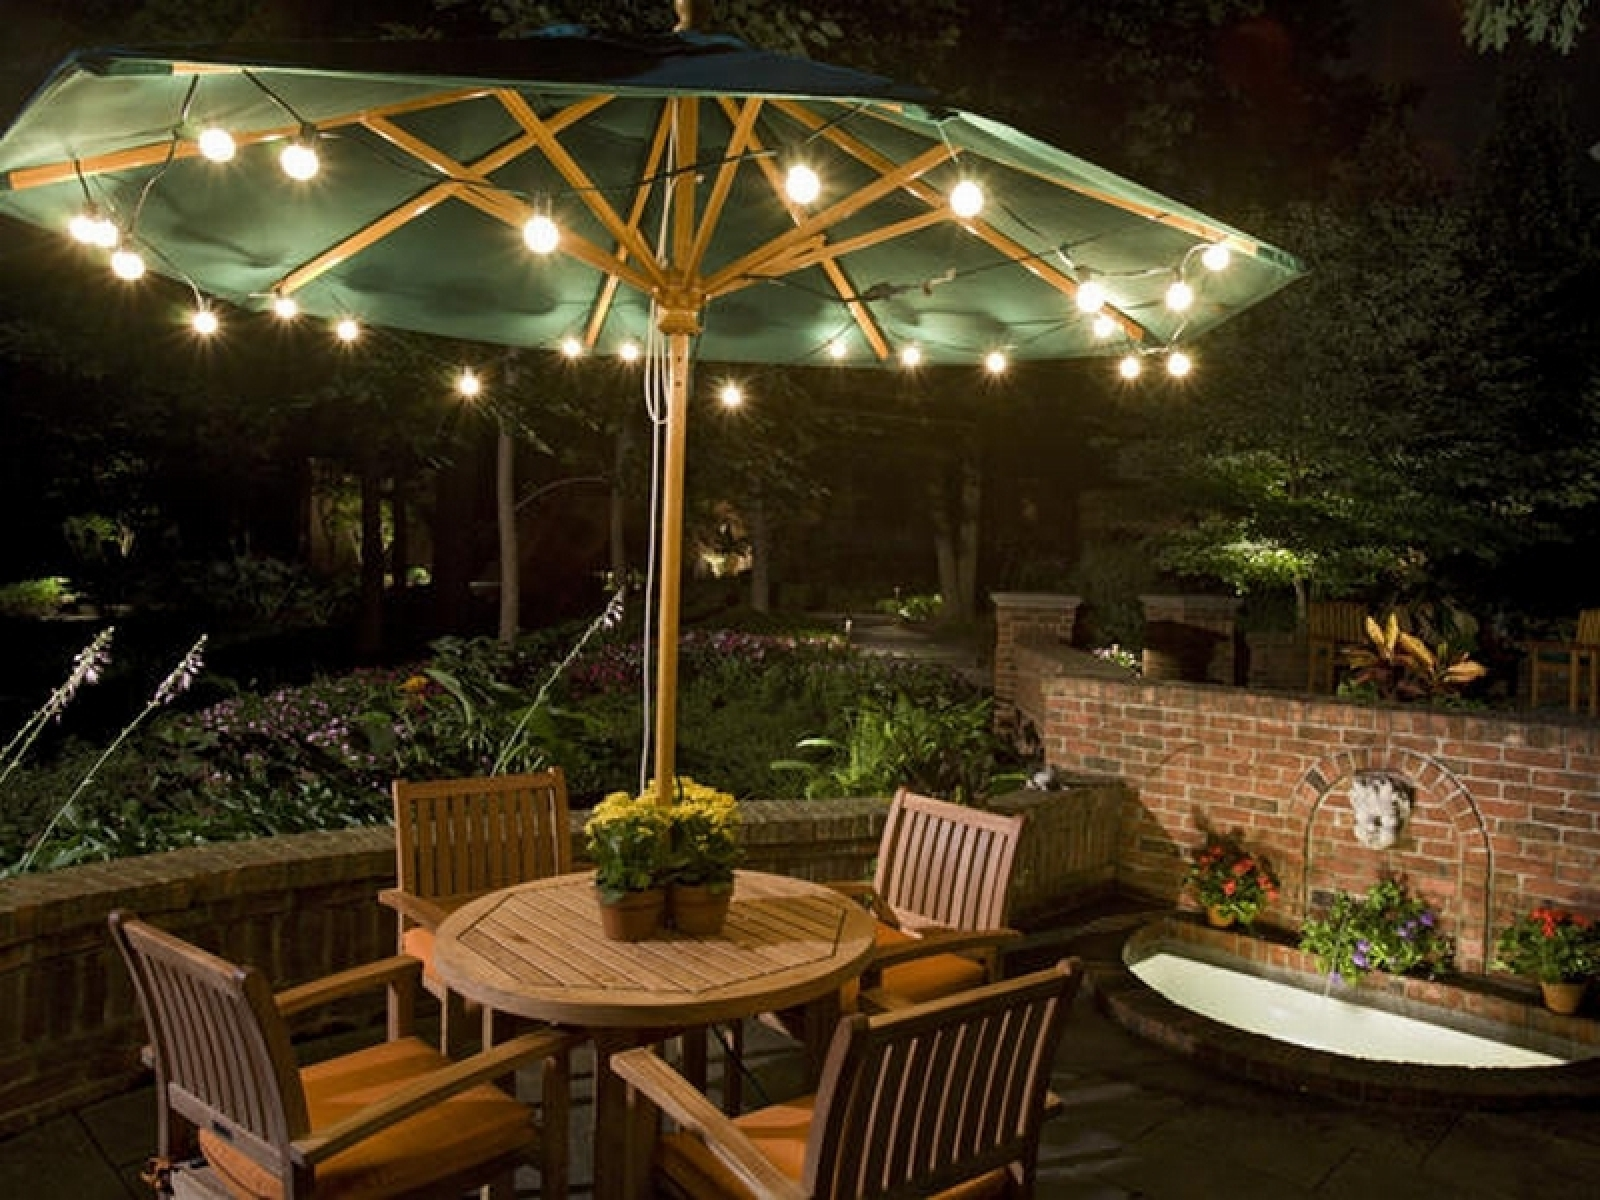 Outdoor Table Lights - Outdoor Lighting Ideas pertaining to Outdoor Lanterns for Tables (Image 16 of 20)